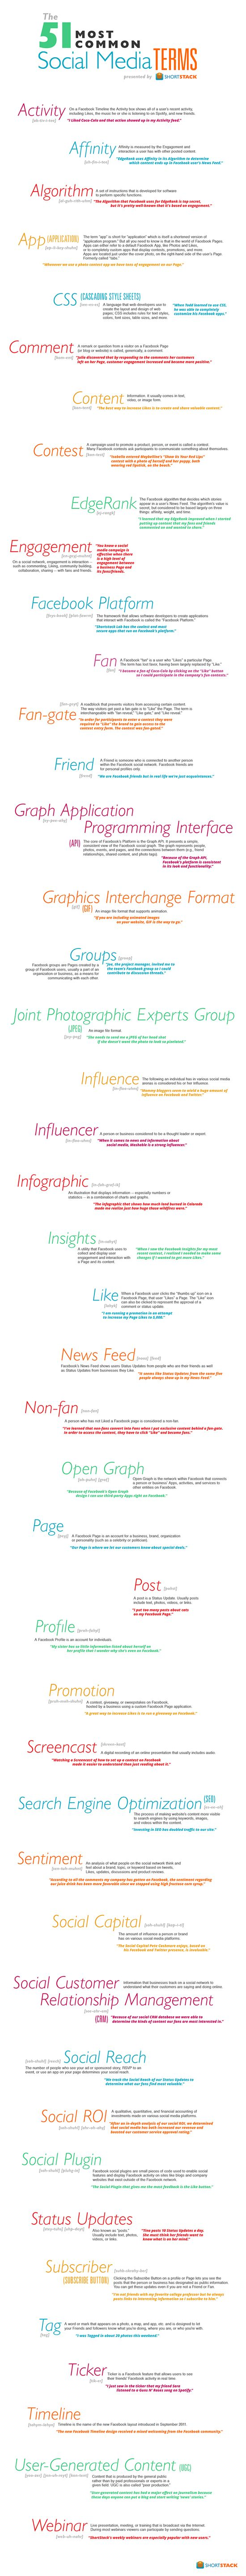 Social Media Lexicon